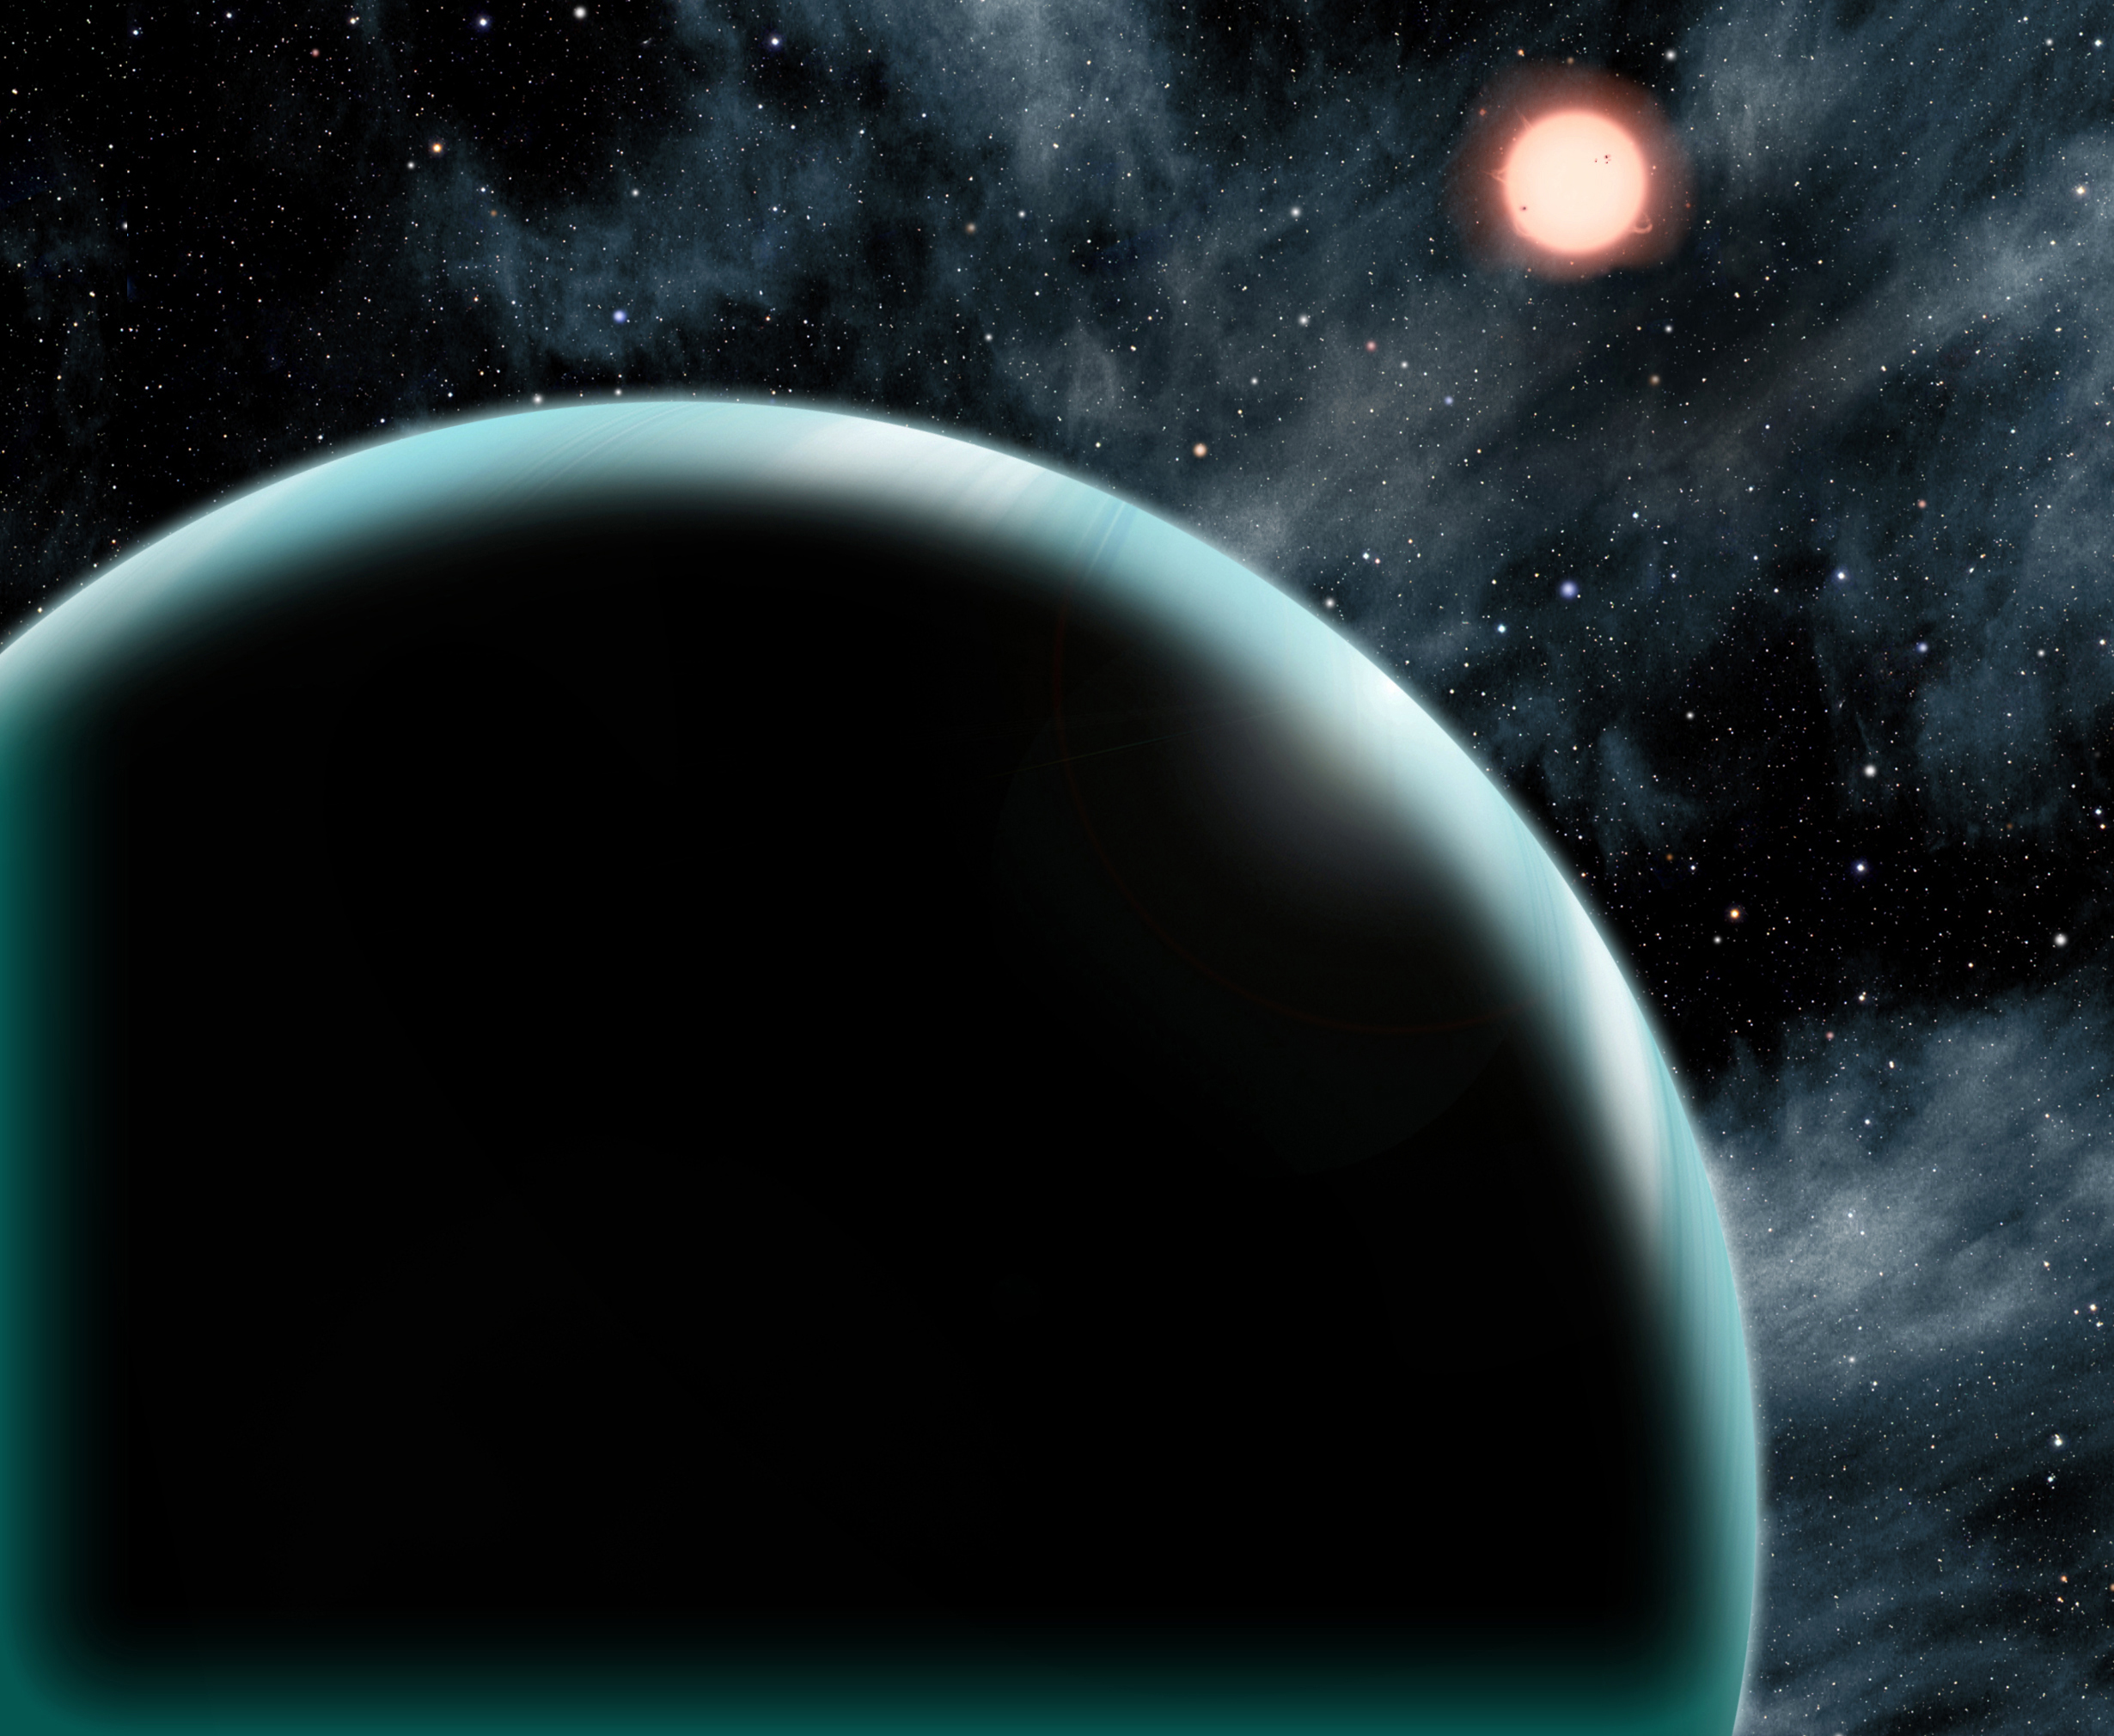 This artist's conception shows Kepler-421b, a Uranus-sized transiting exoplanet with the longest known year, circling its star once every 704 days. Kepler-421b orbits an orange, K-type star that is cooler and dimmer than our sun and is located about 1,000 light-years from Earth in the constellation Lyra.    Image Credit: Harvard-Smithsonian, Center for Astrophysics/D. A. Aguilar